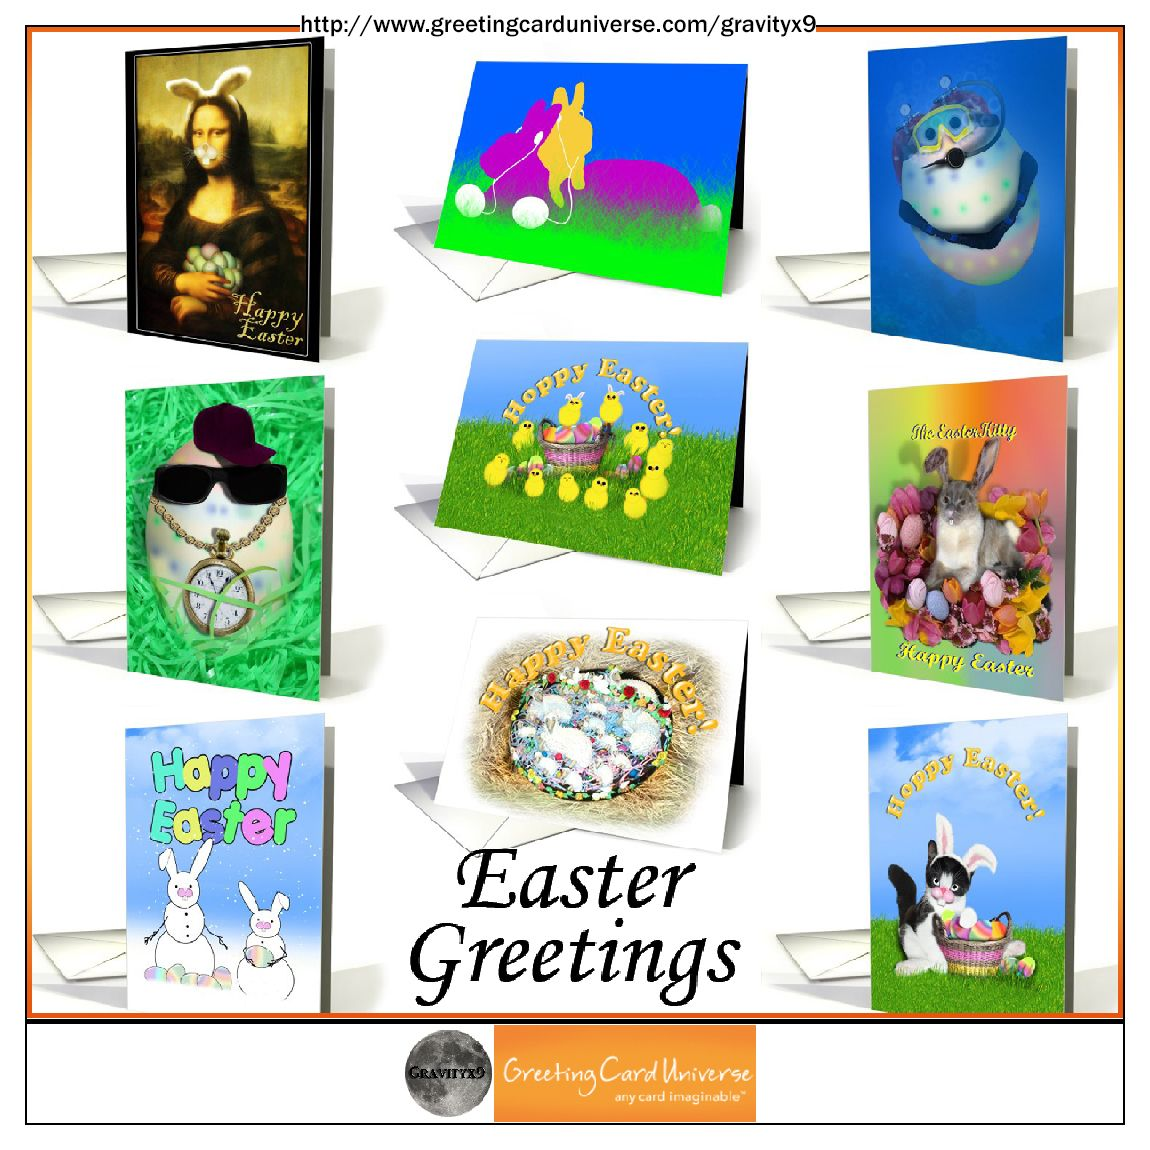 Easter Greeting Cards By Gravityx9 Designs On Greetingcarduniverse